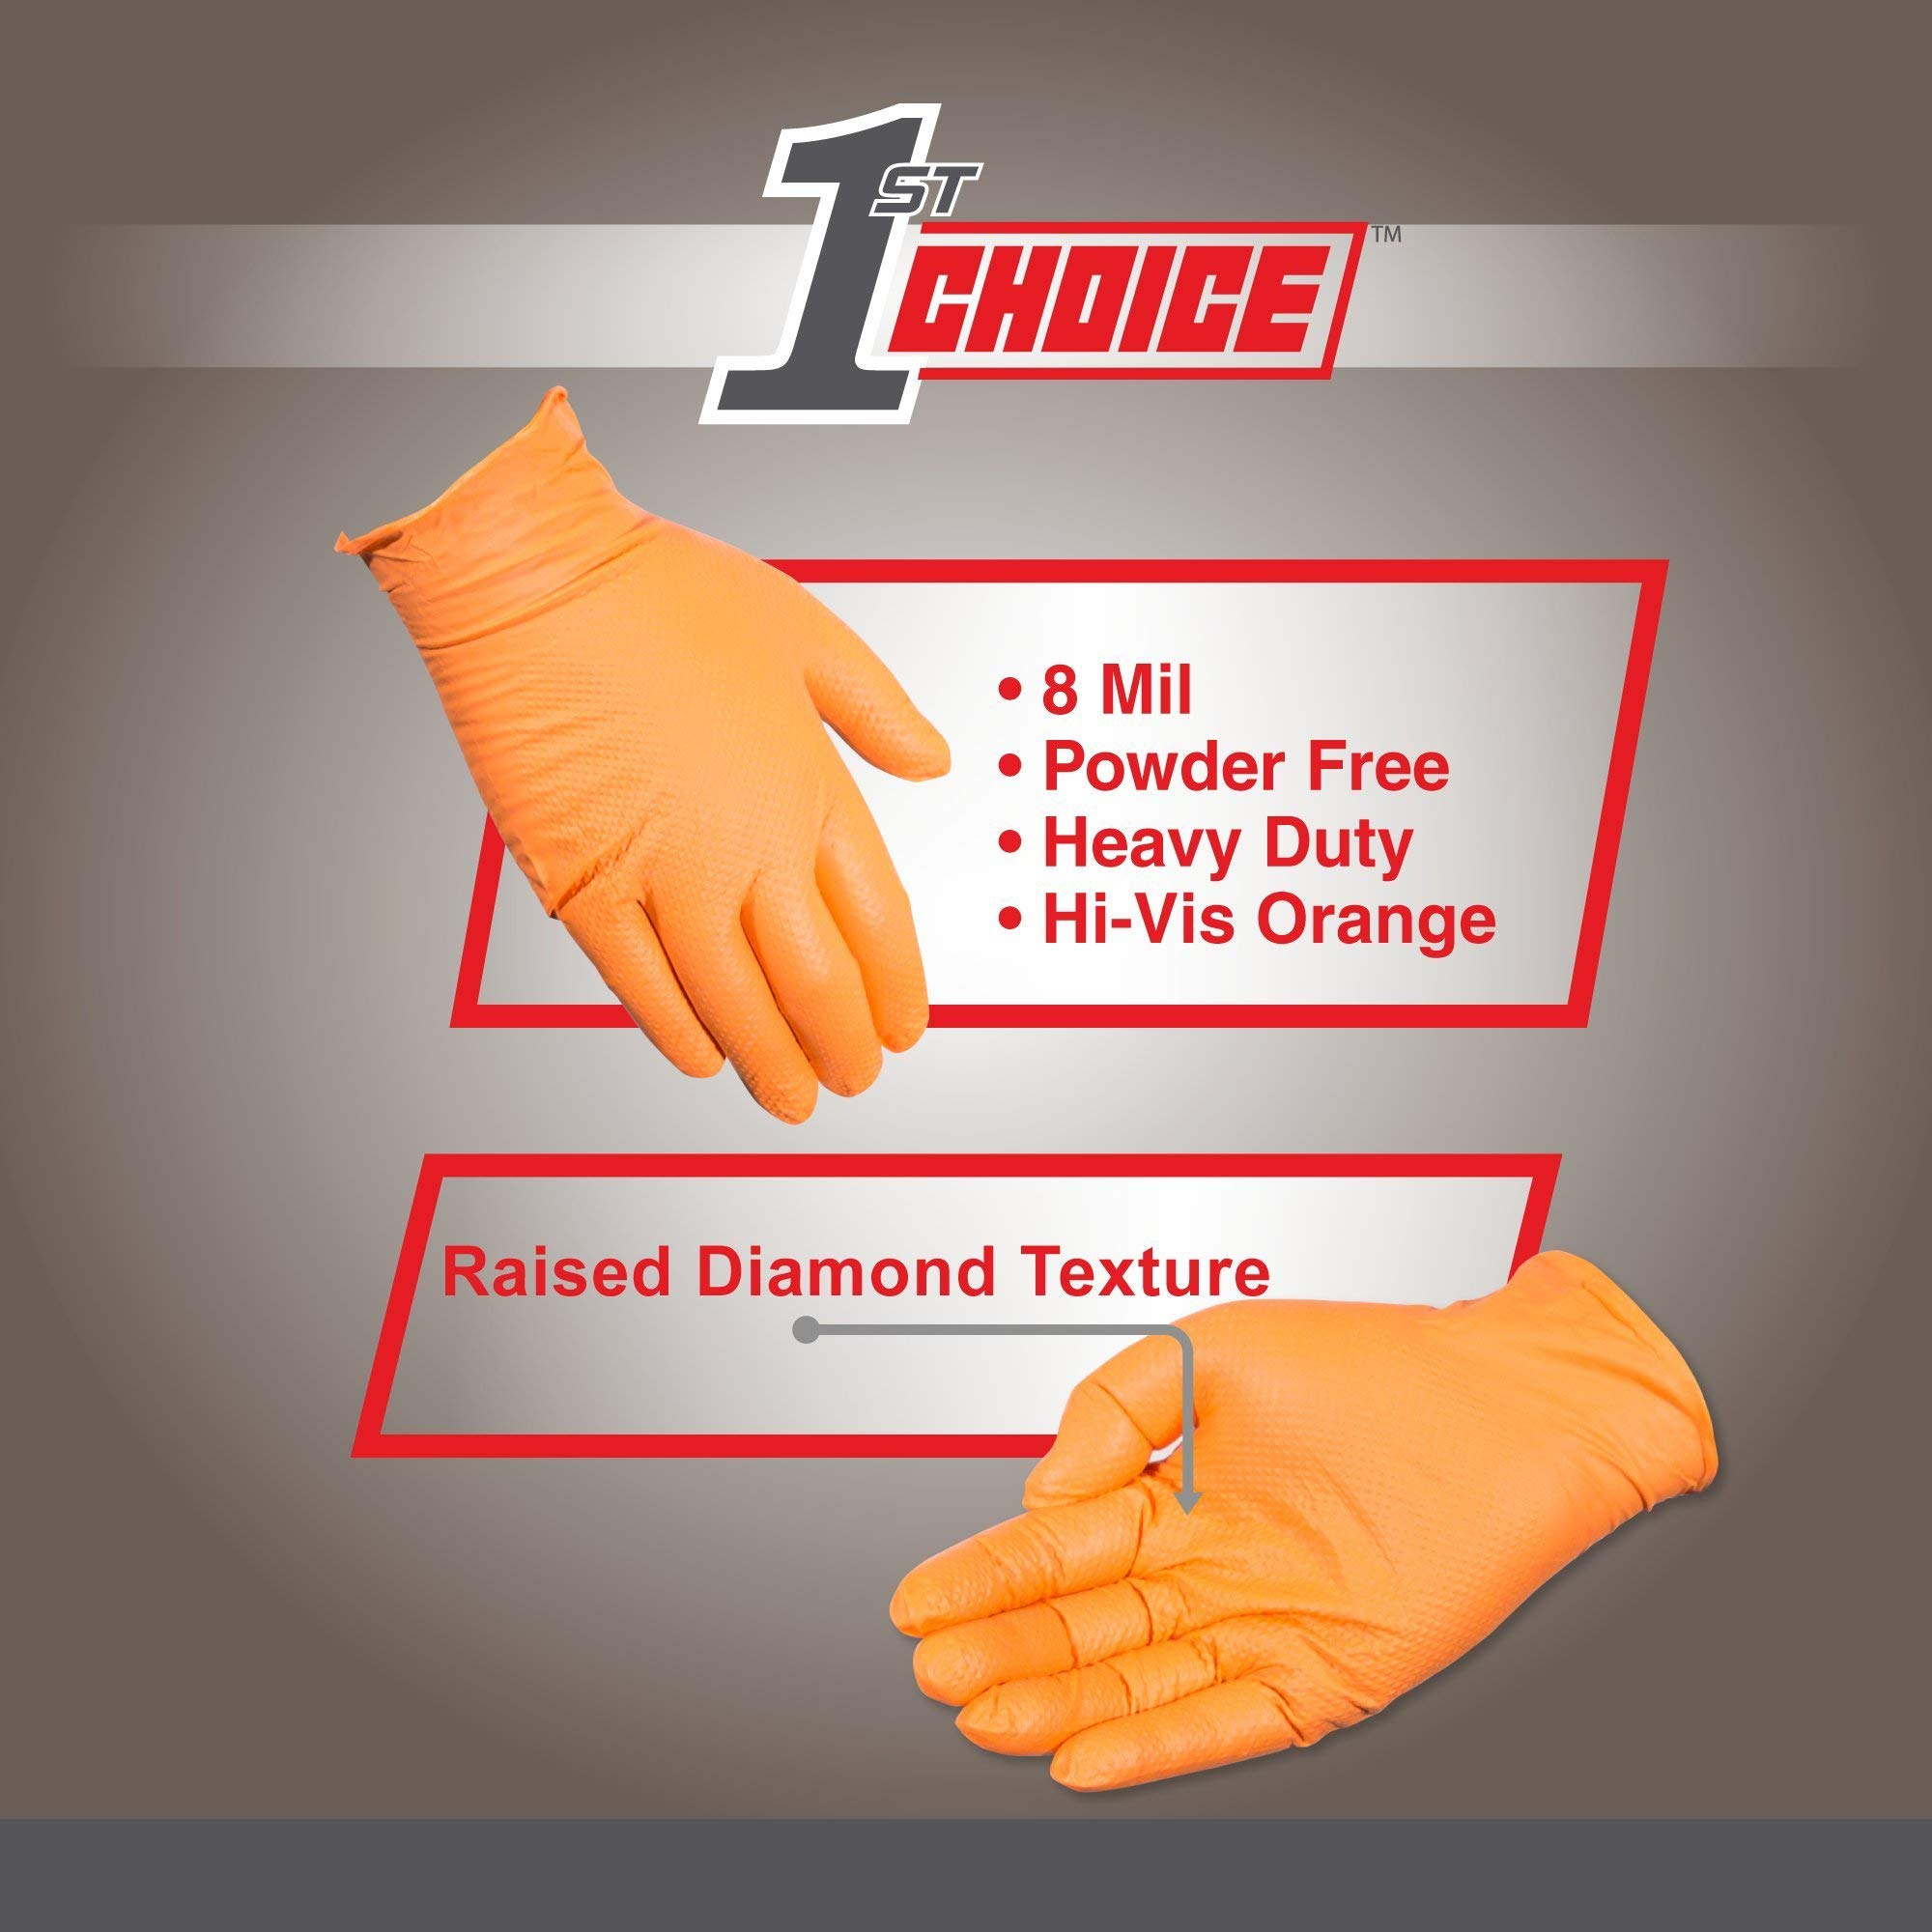 1st Choice Industrial 8 Mil Orange Nitrile Gloves - Latex Free, Powder Free, Non-Sterile, XLarge, Case of 400 by 1st Choice (Image #3)